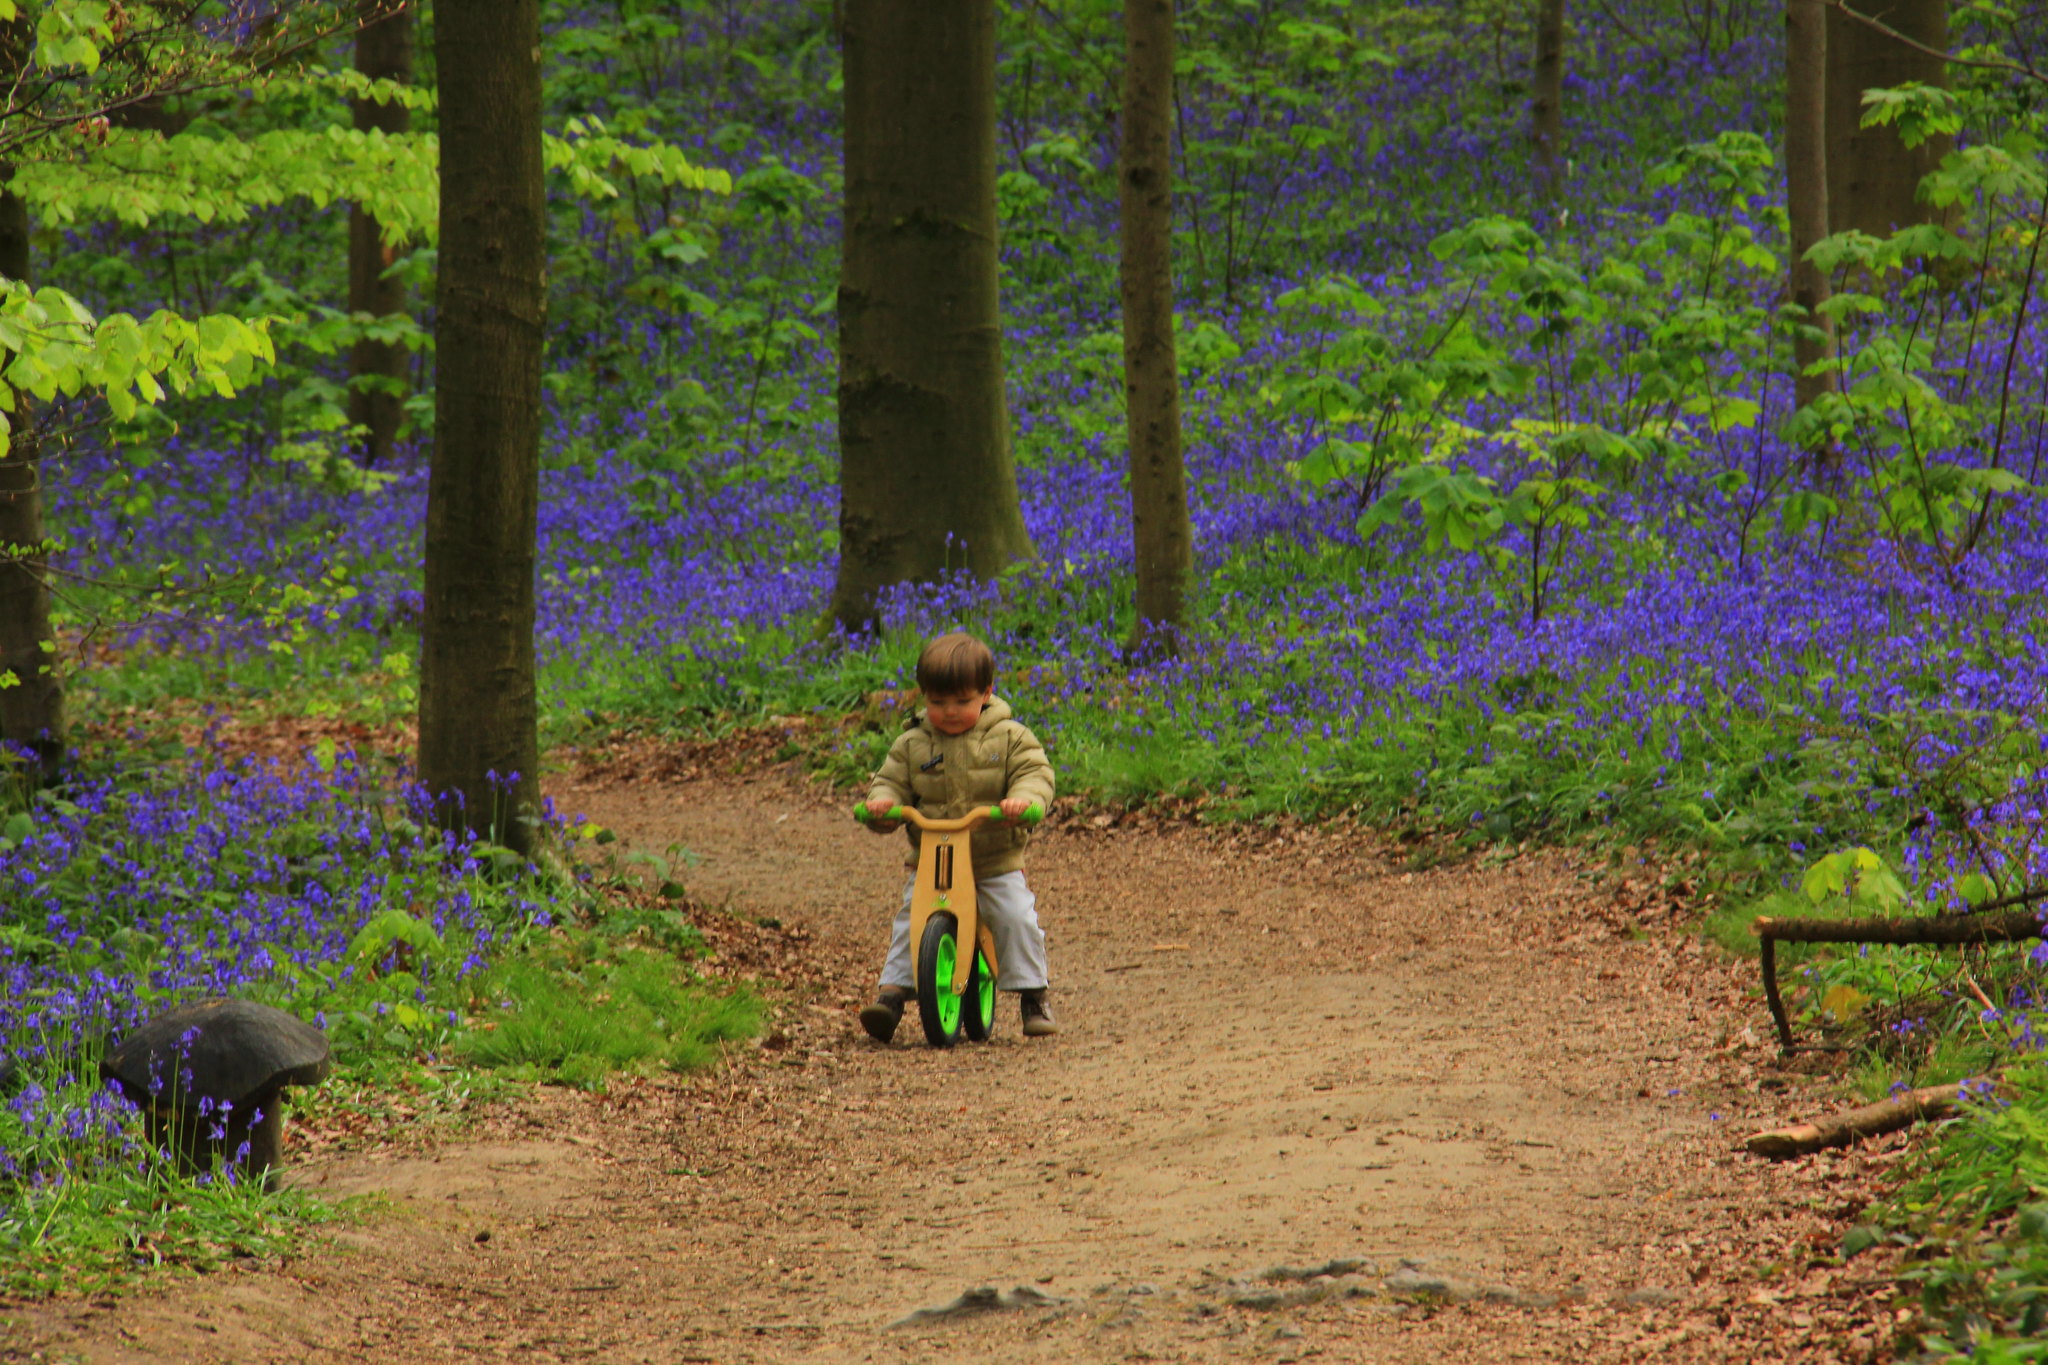 hallerbos blue forest is a great day trip from brussels